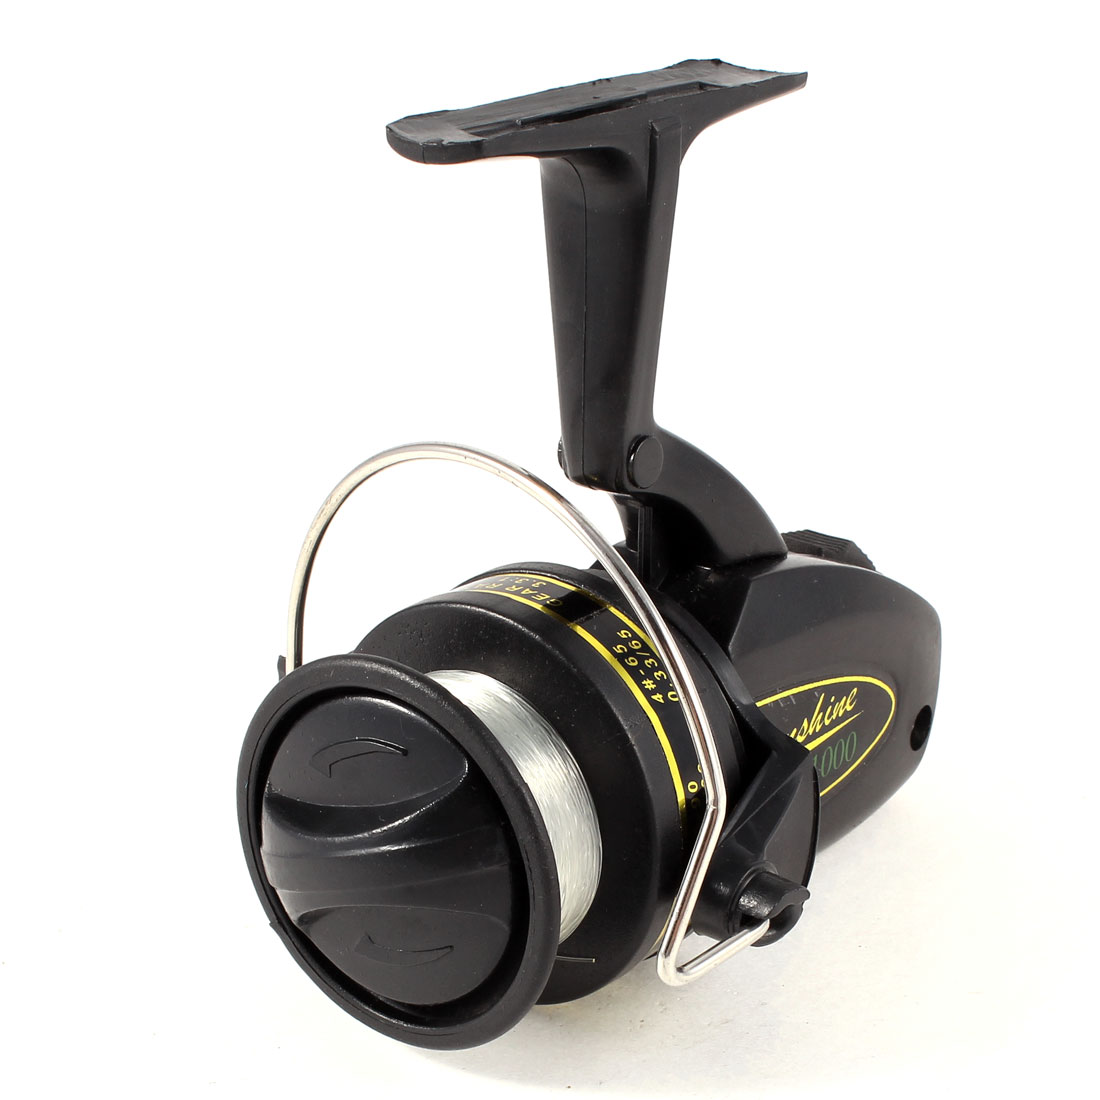 Black Rotating Handle Gear Ratio 3.3:1 Fishing Spinning Winding Reel w Line